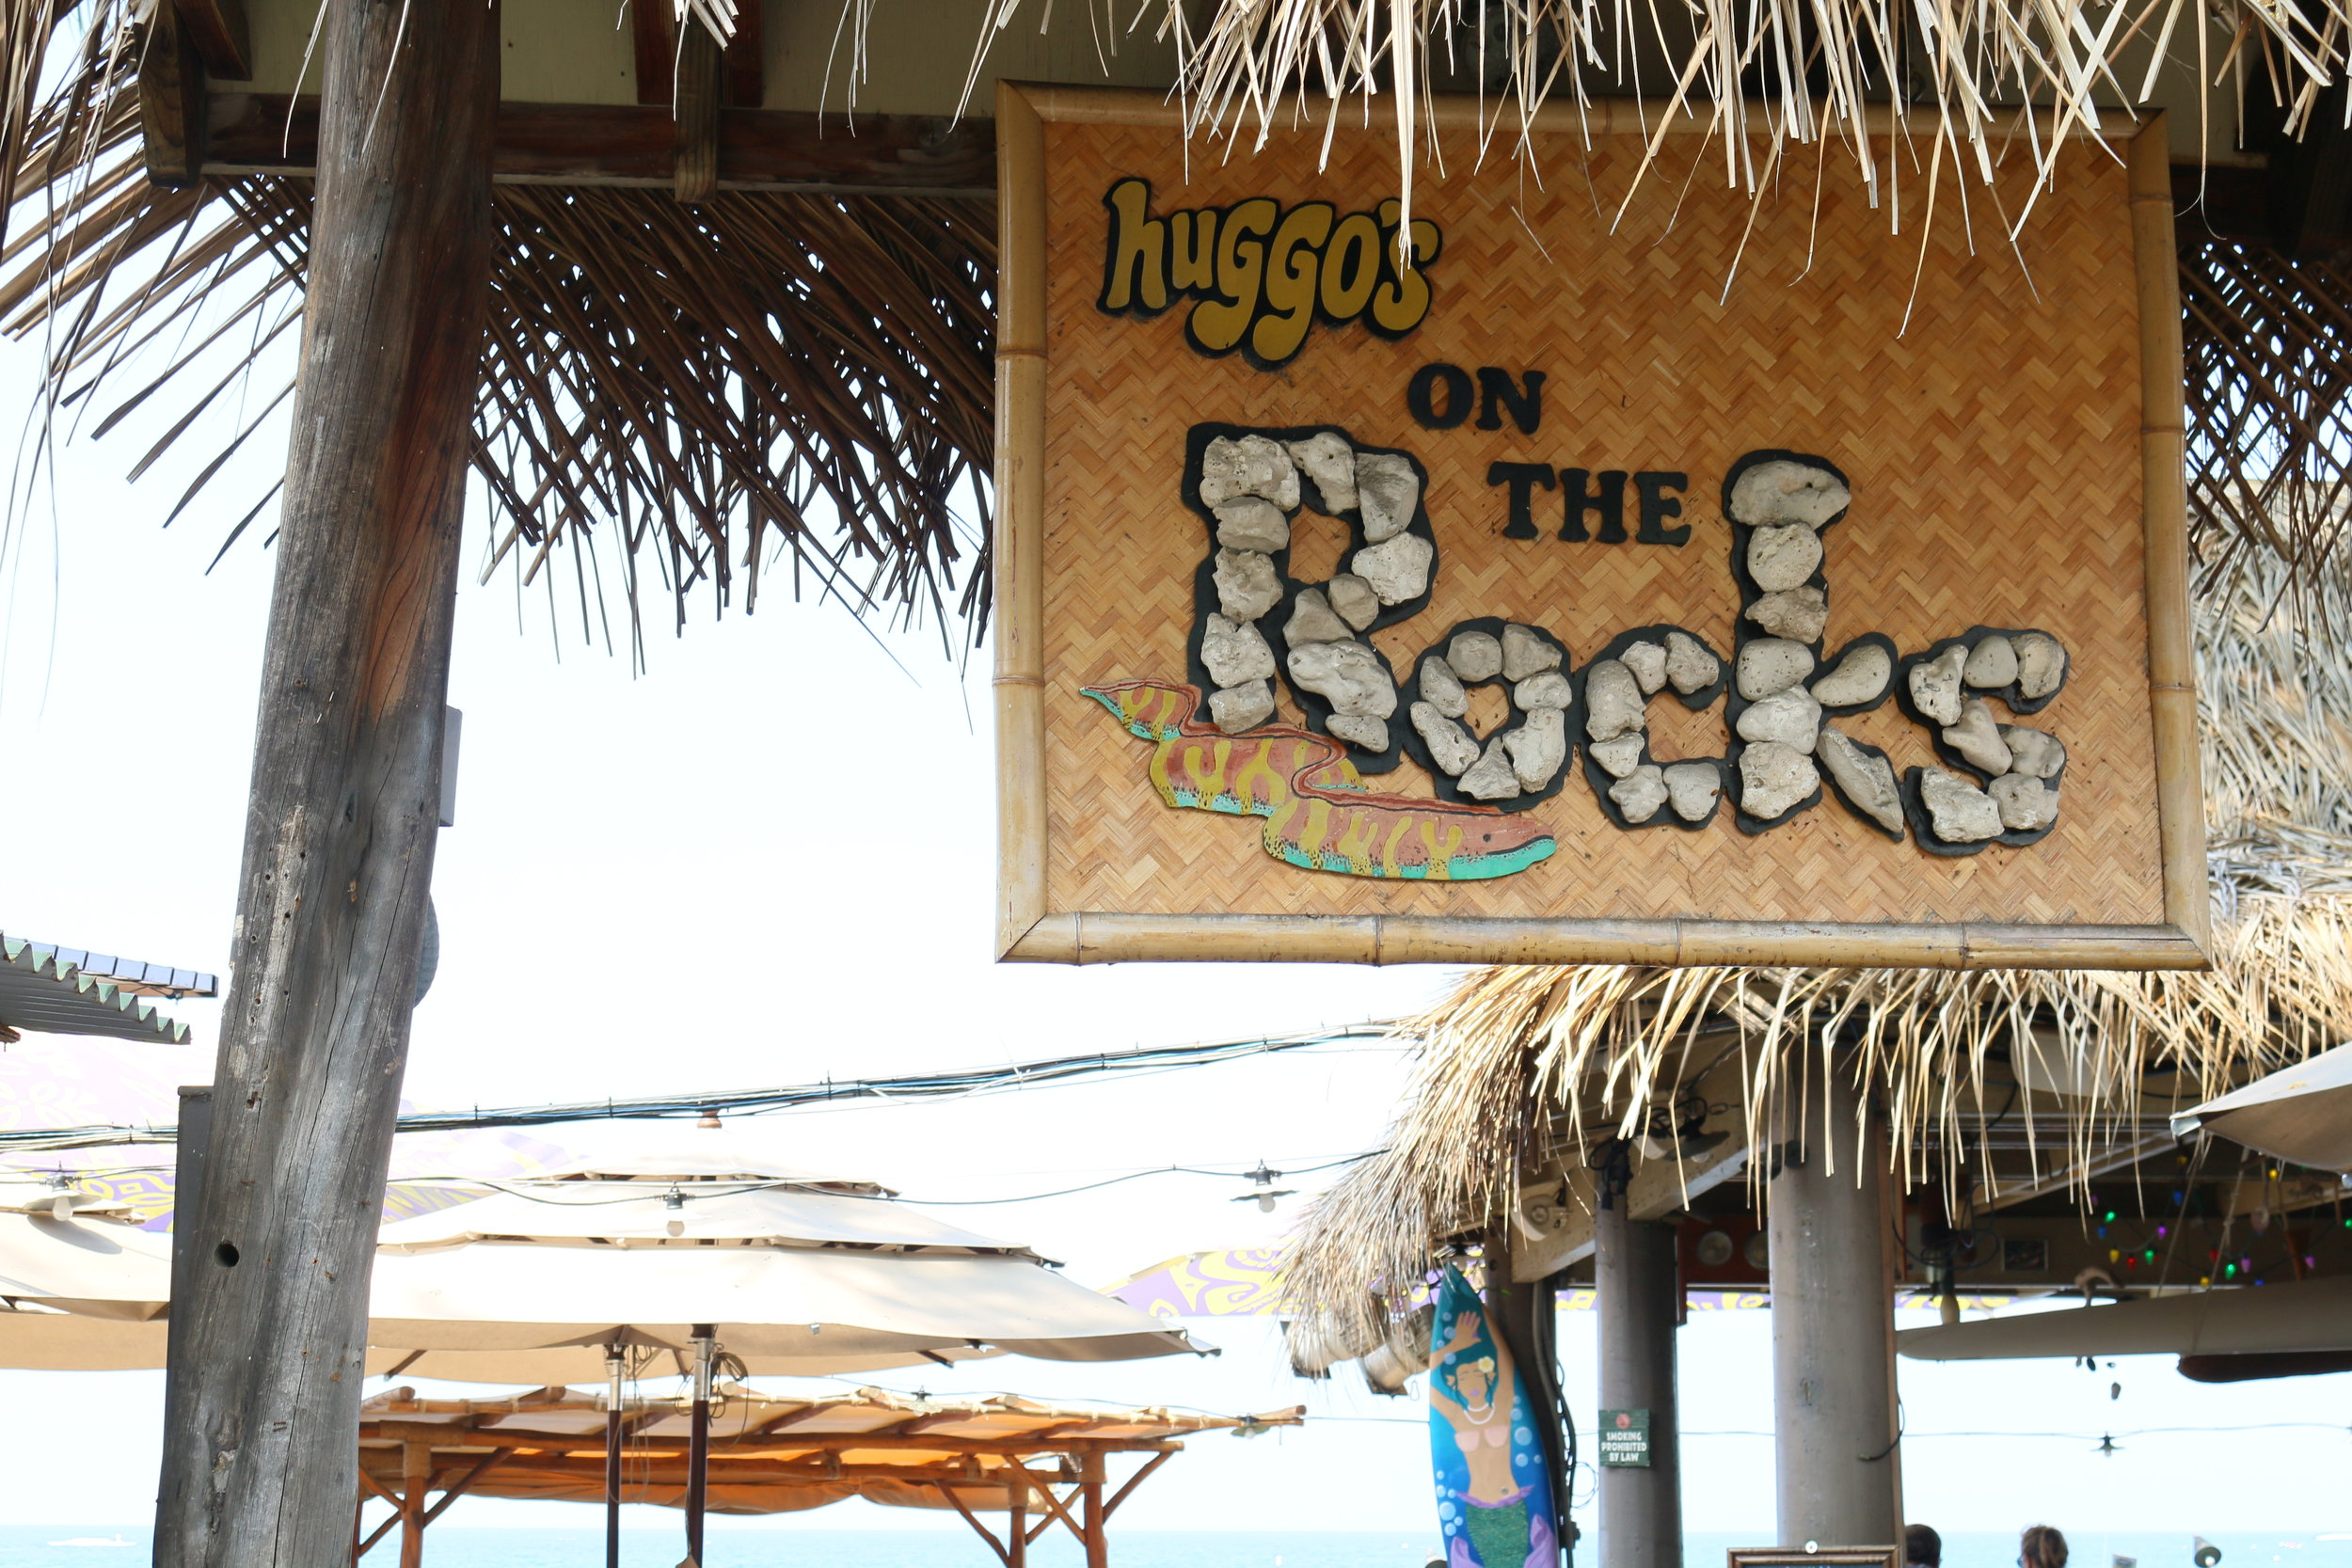 HAVE A MAI TAI, FEEL THE KAILUA BAY BREEZE, AND LISTEN TO SOME LIVE MUSIC AT  HUGGO'S ON THE ROCKS